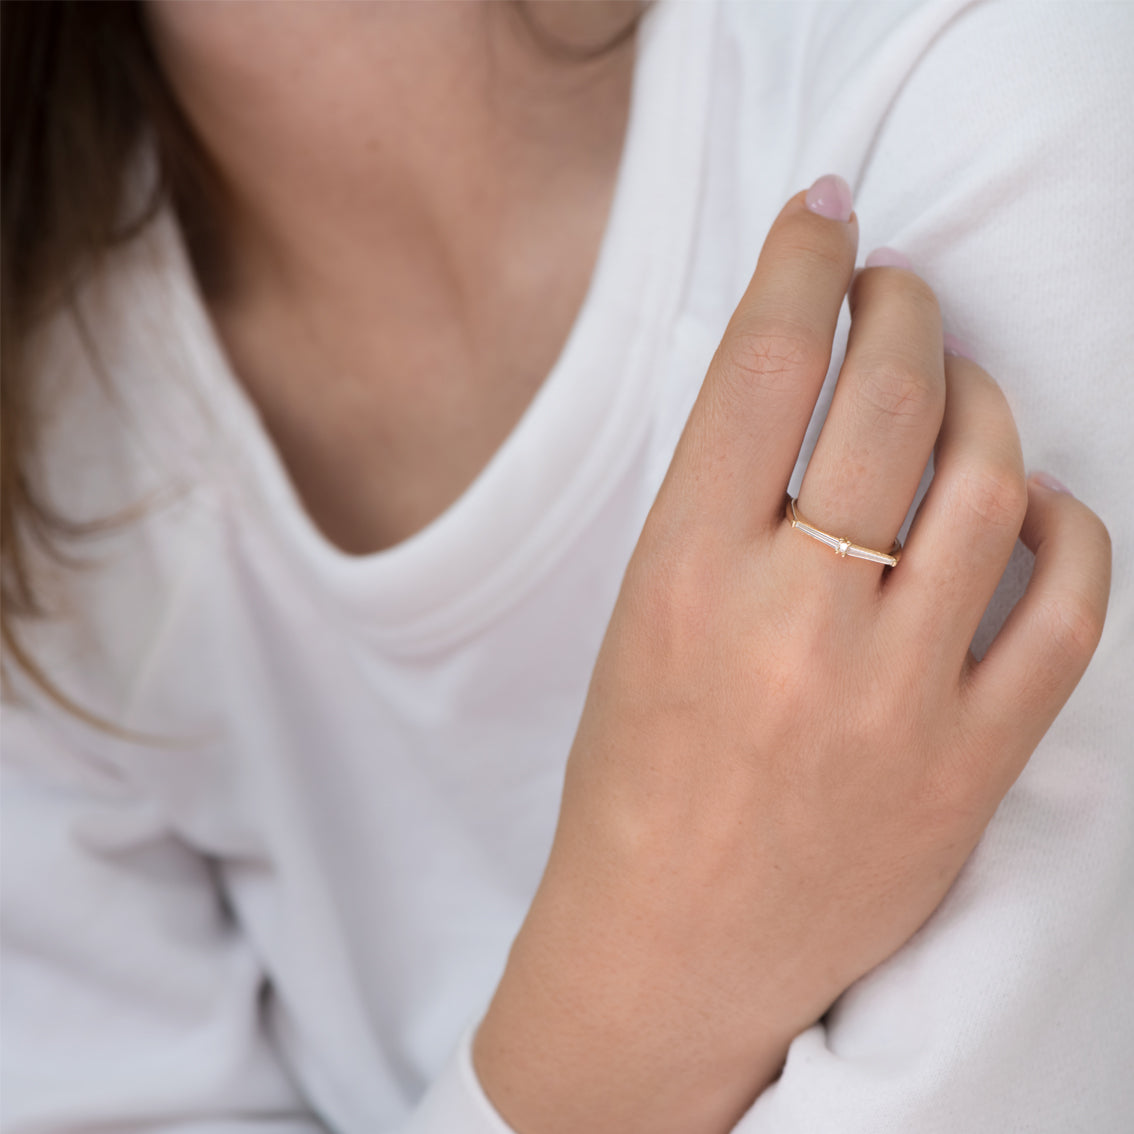 Thin-Tapered-Baguette-Cluster-Ring-Alternative-Wedding-Ring-on-finger